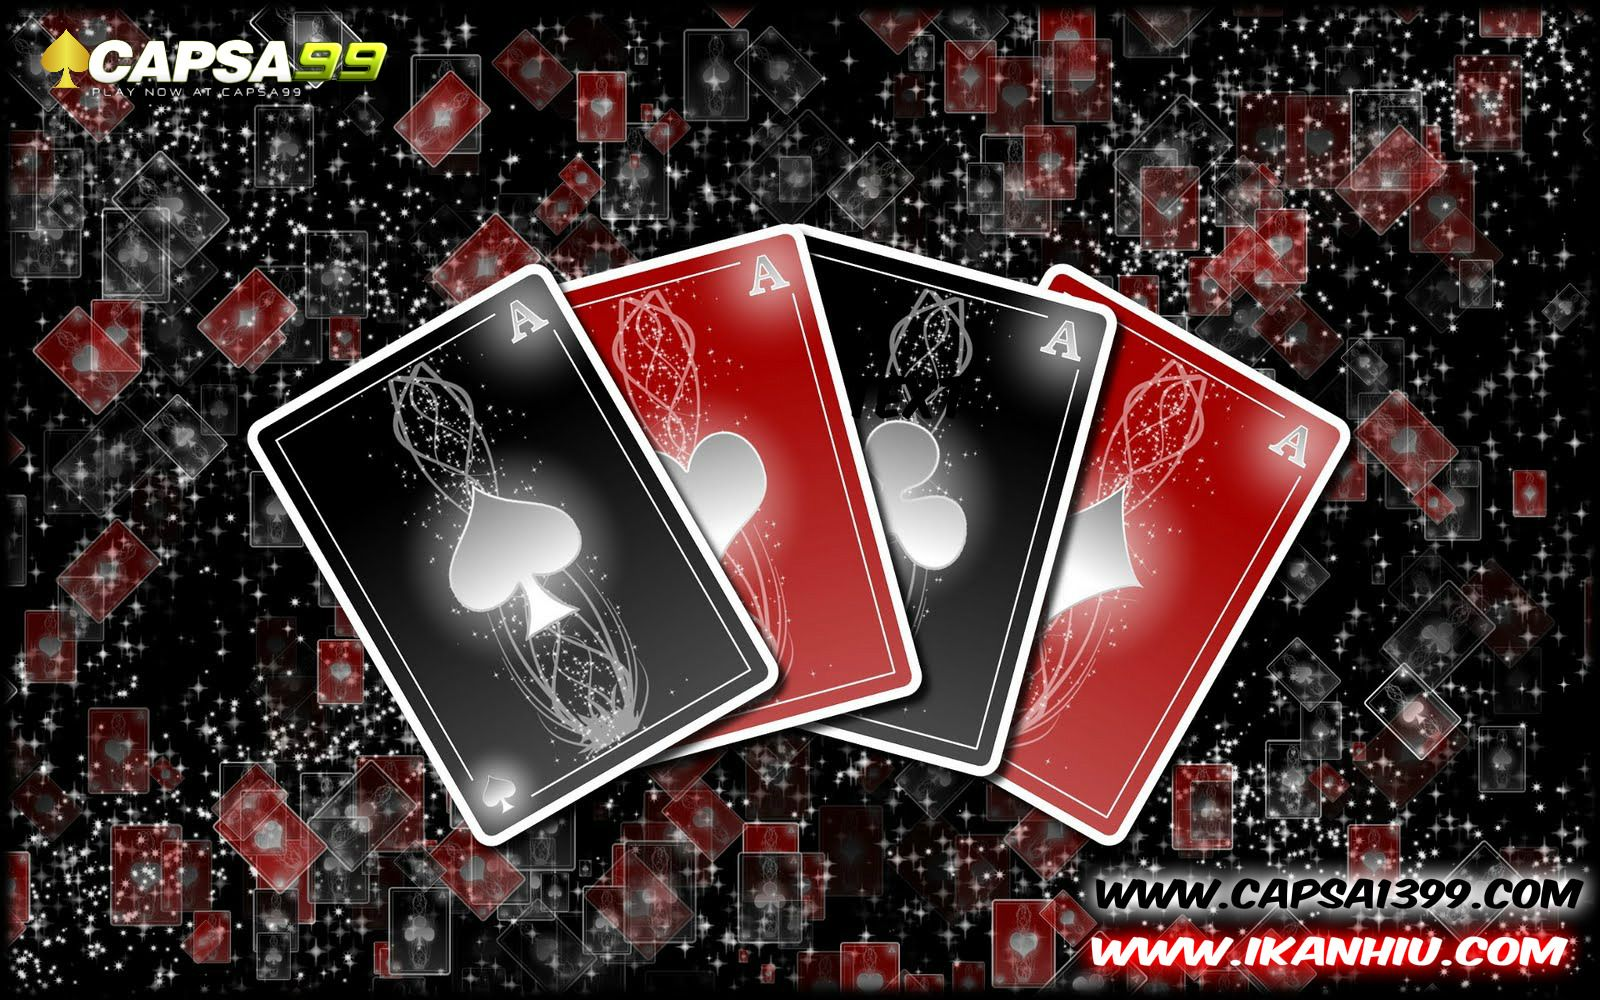 Ten Suggestions To Use The Law Of Attraction To Win At Casino Gambling